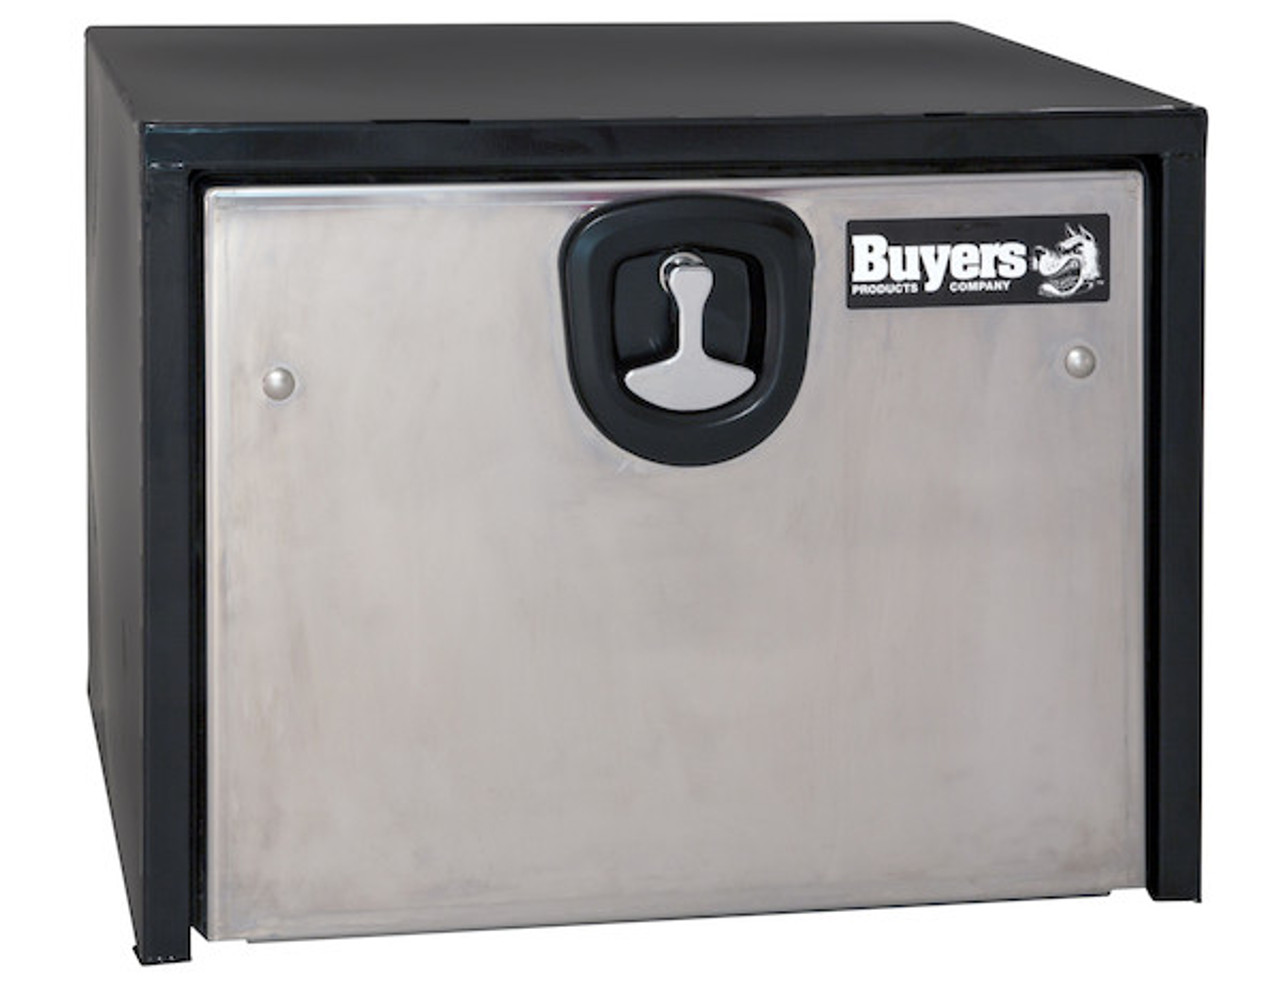 1702700 BUYERS PRODUCTS BLACK STEEL UNDERBODY TRUCK BOX WITH STAINLESS STEEL DOOR TOOLBOX